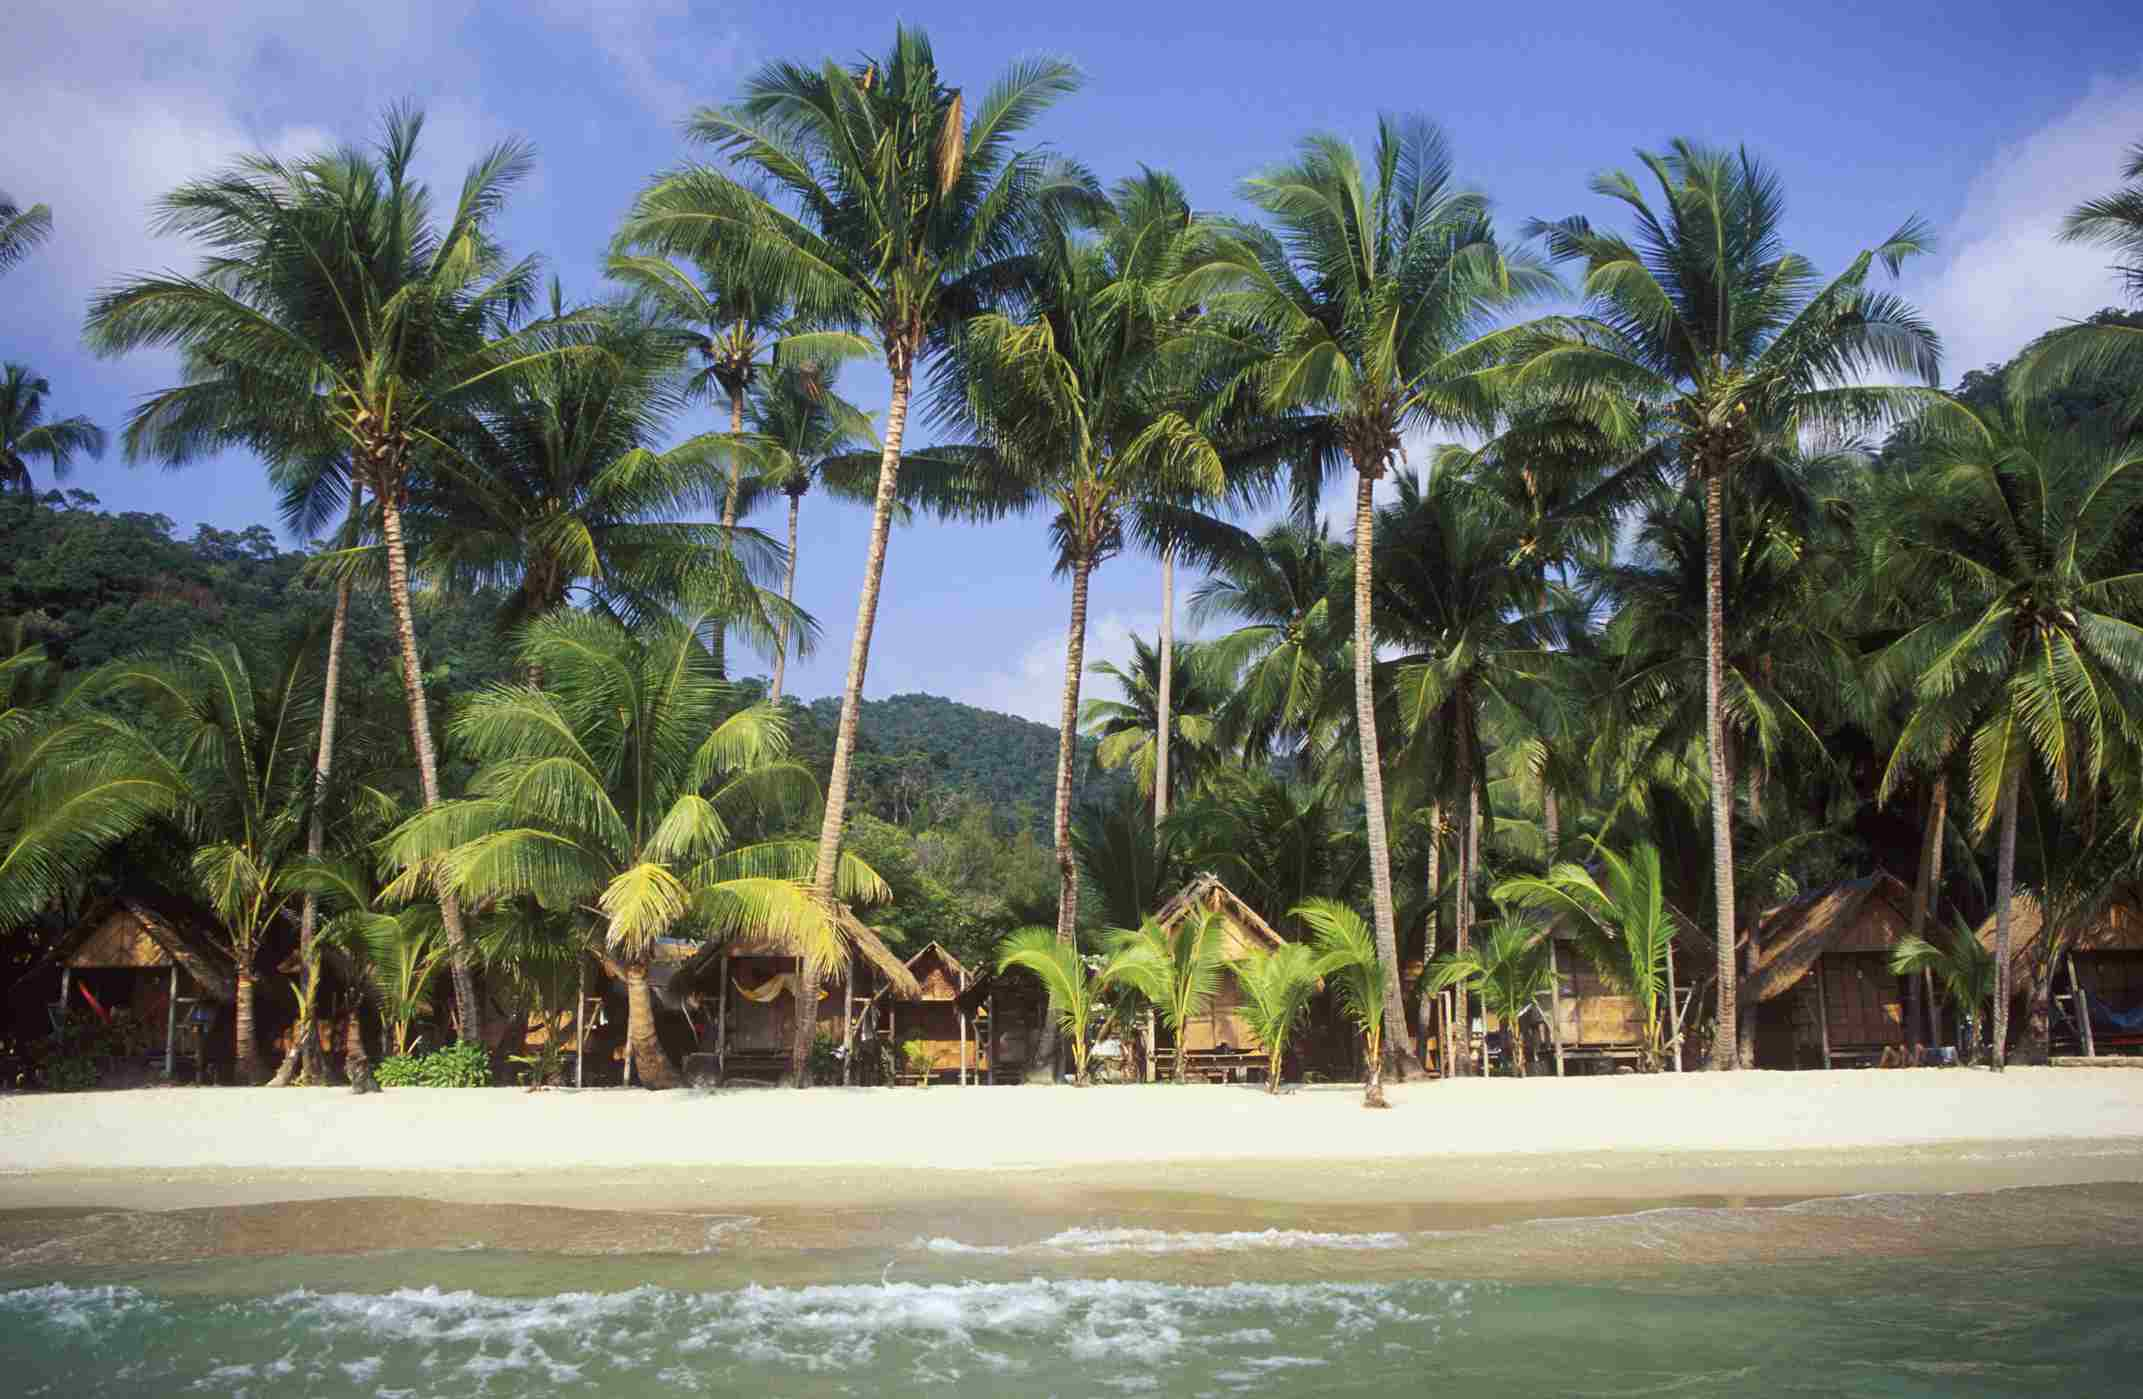 Palm trees and bungalows at White Sand Beach, Koh Chang